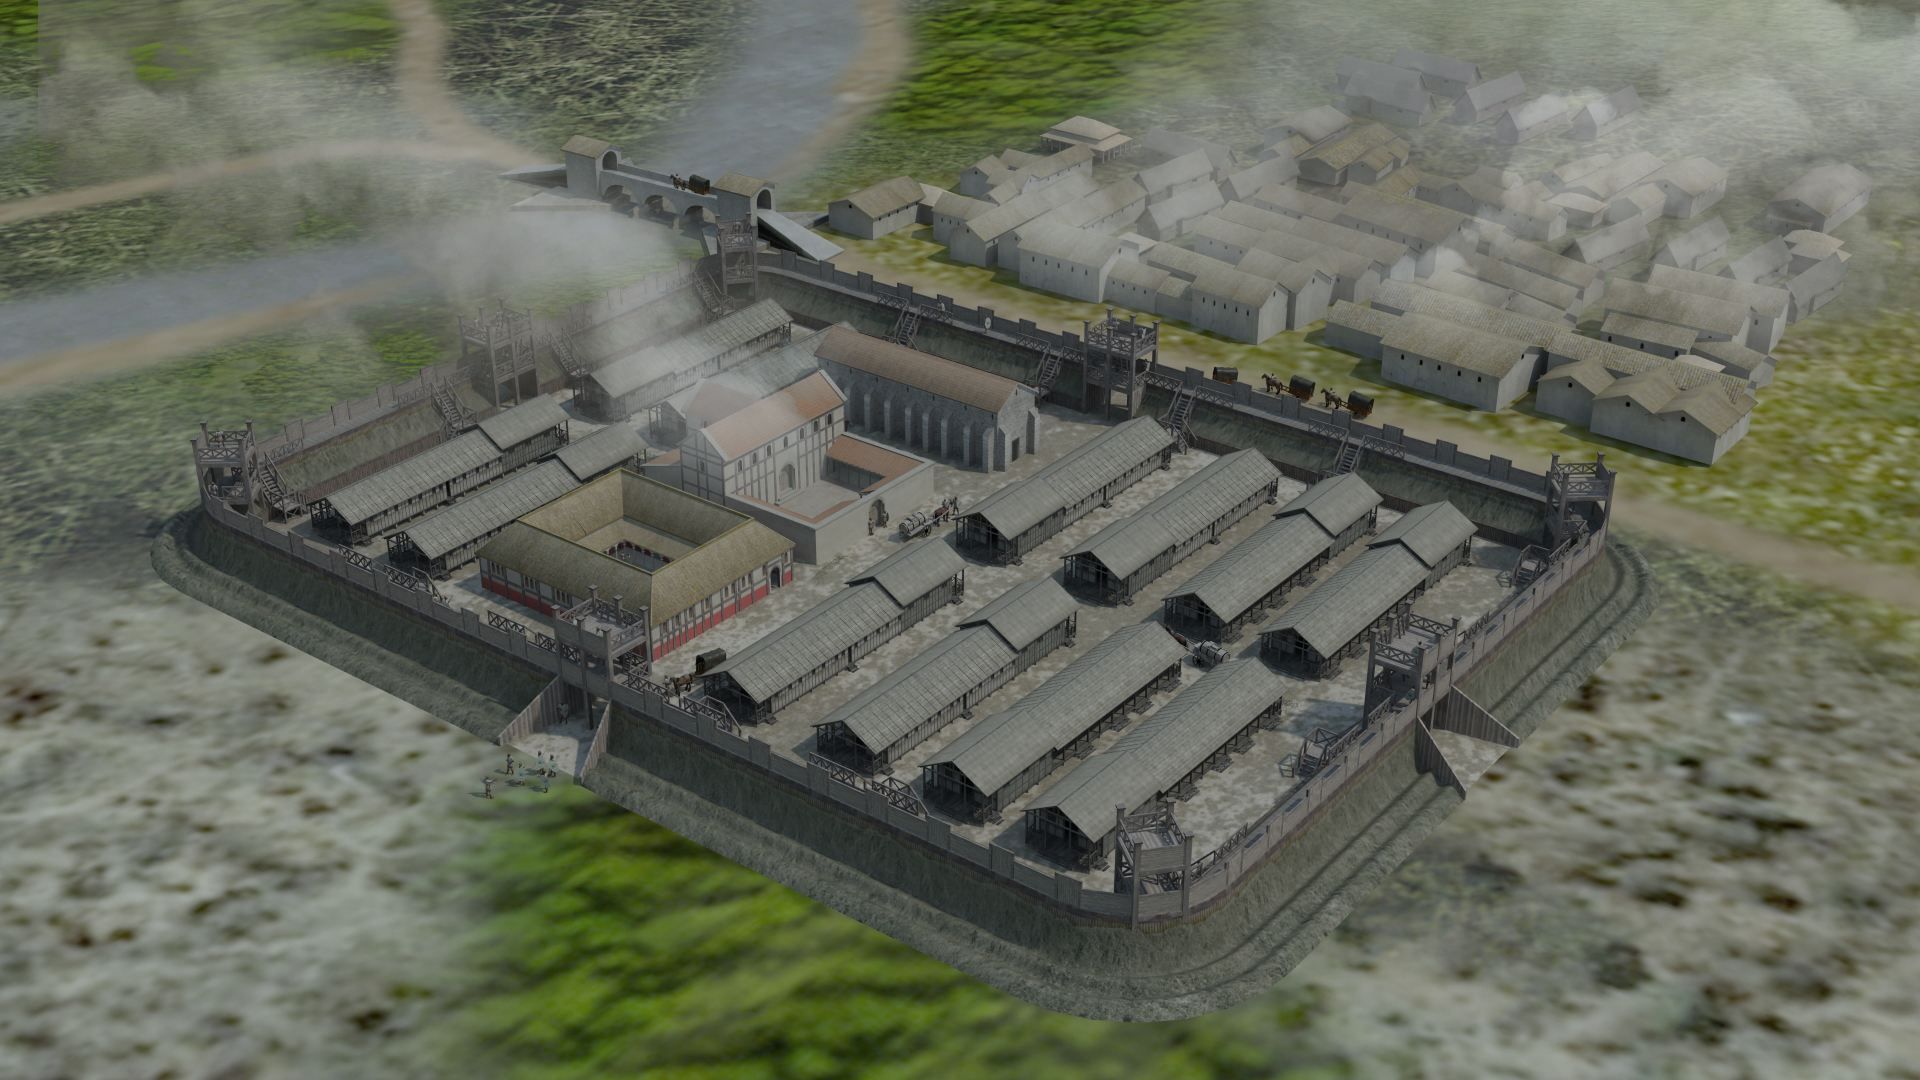 Ilkley roman fort for Old wooden forts